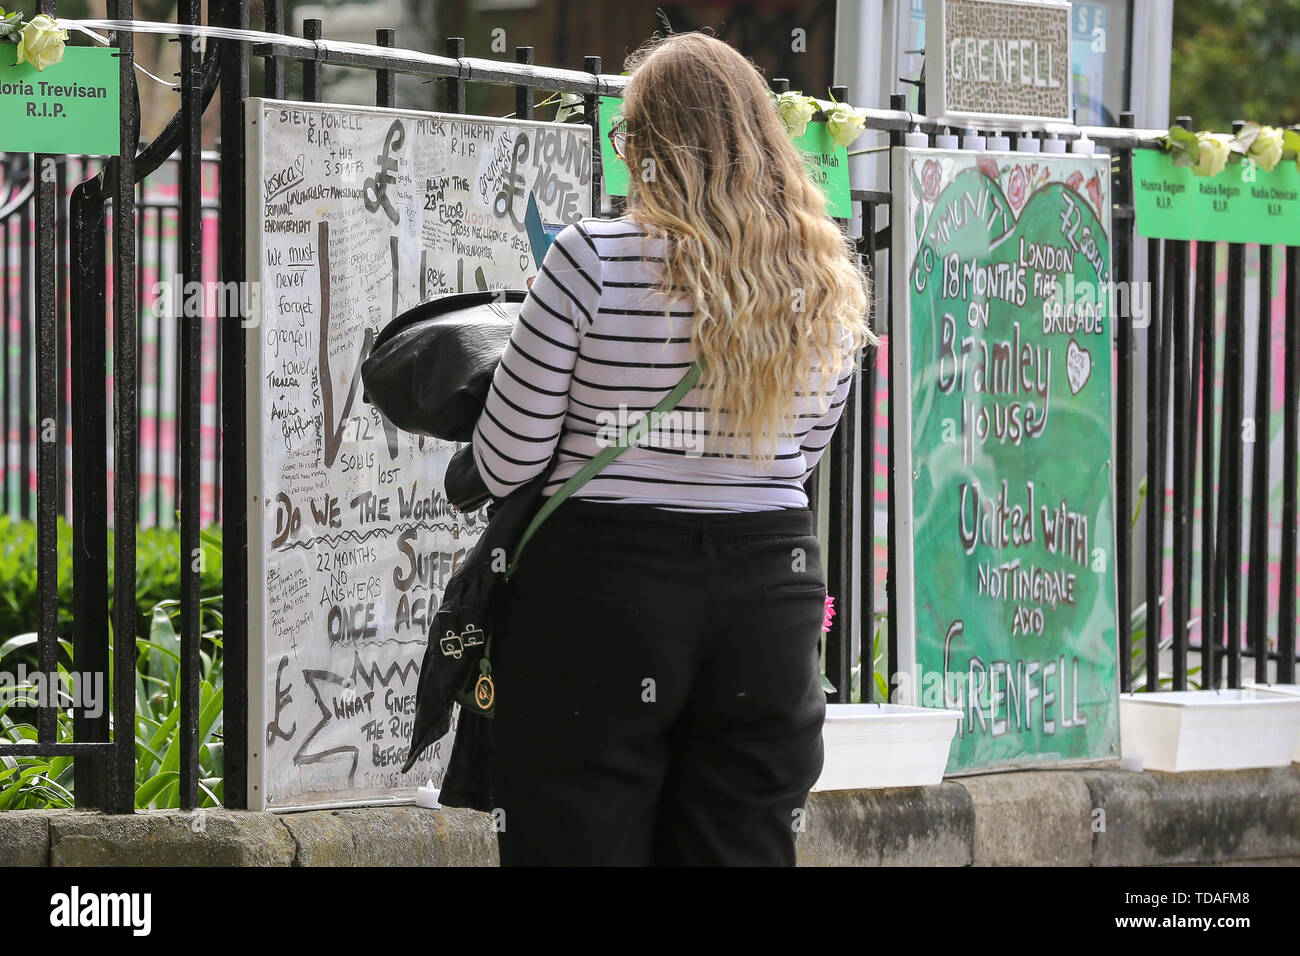 North Kensington, West London. UK 14 Jun 2019 - A woman reads the messages hung on the railing on a nearby block of flats. On 14 June 2017, just before 1:00Êam a fire broke out in the kitchen of the fourth floor flat at the 24-storey residential tower block in North Kensington, West London, which took the lives of 72 people. More than 70 others were injured and 223 people escaped.  Credit: Dinendra Haria/Alamy Live News - Stock Image